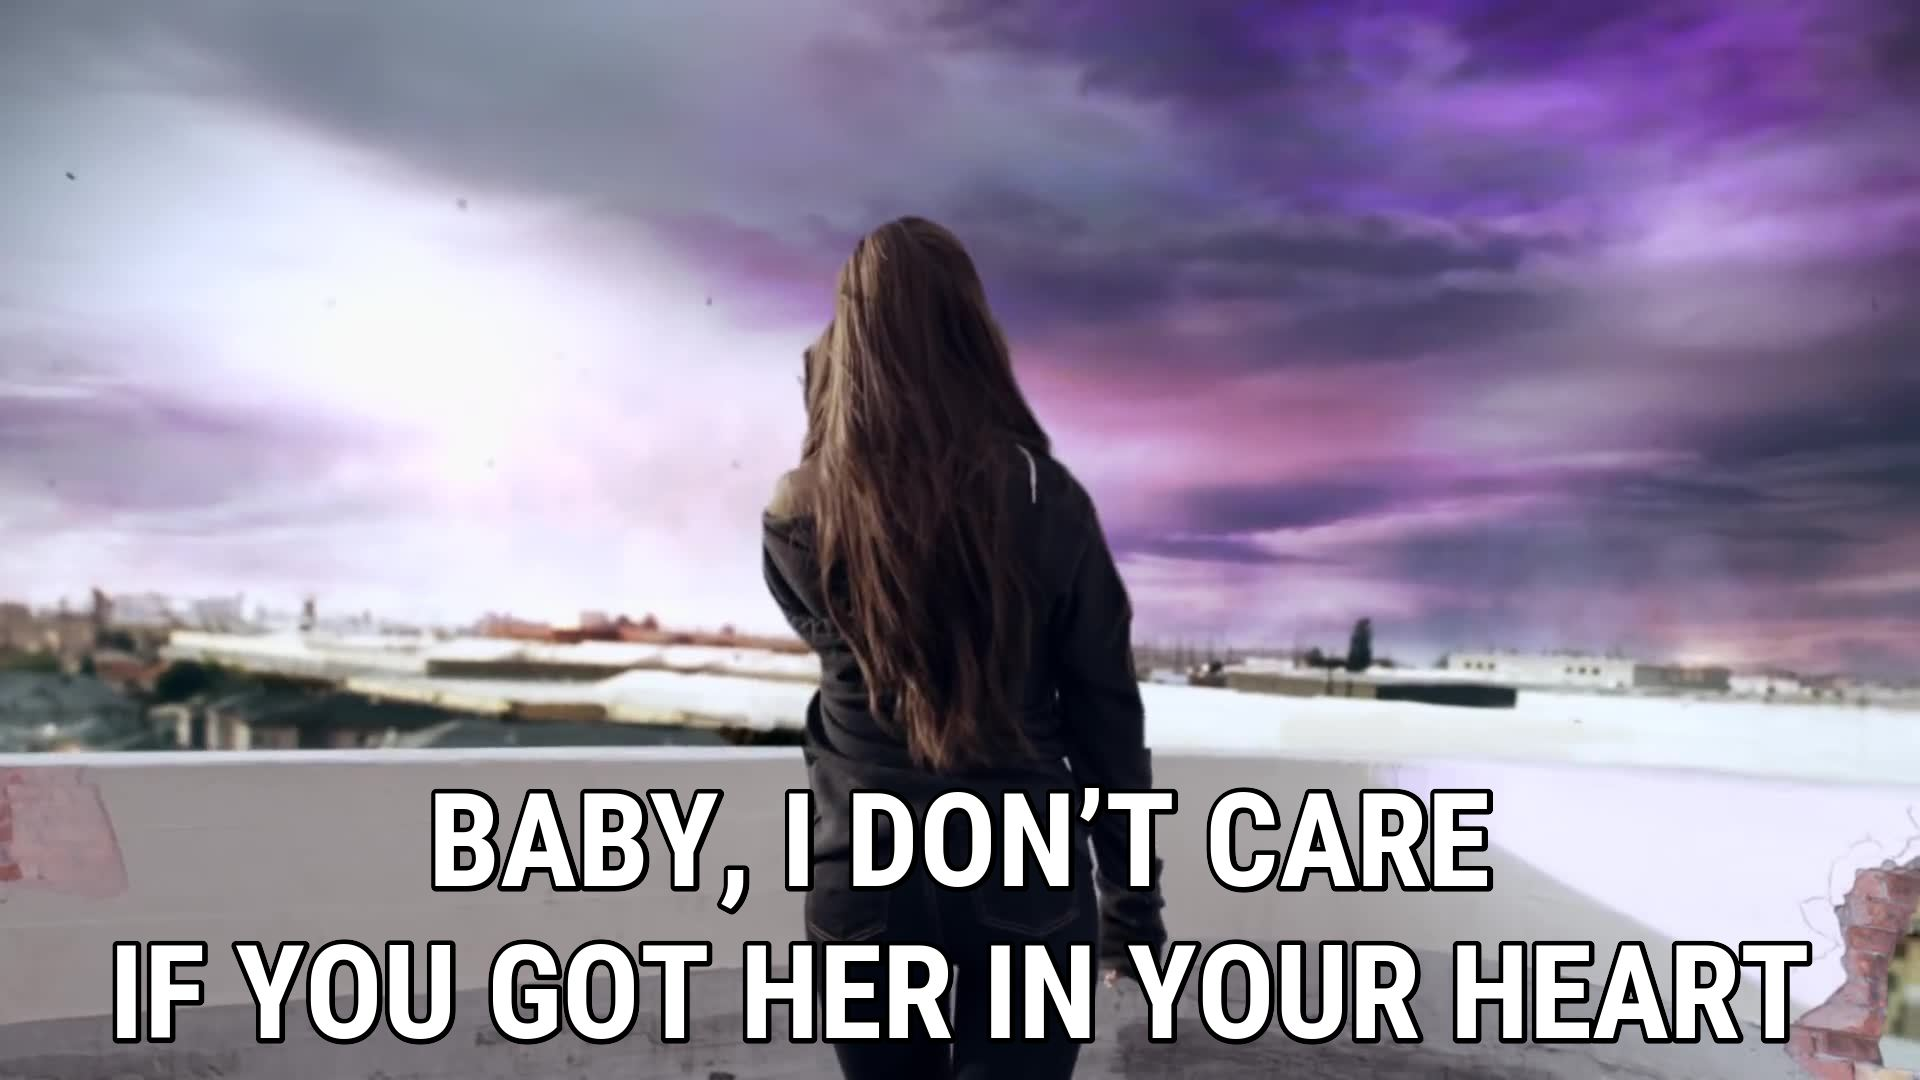 One Last Time lyrics Ariana Grande song in images 1920x1080